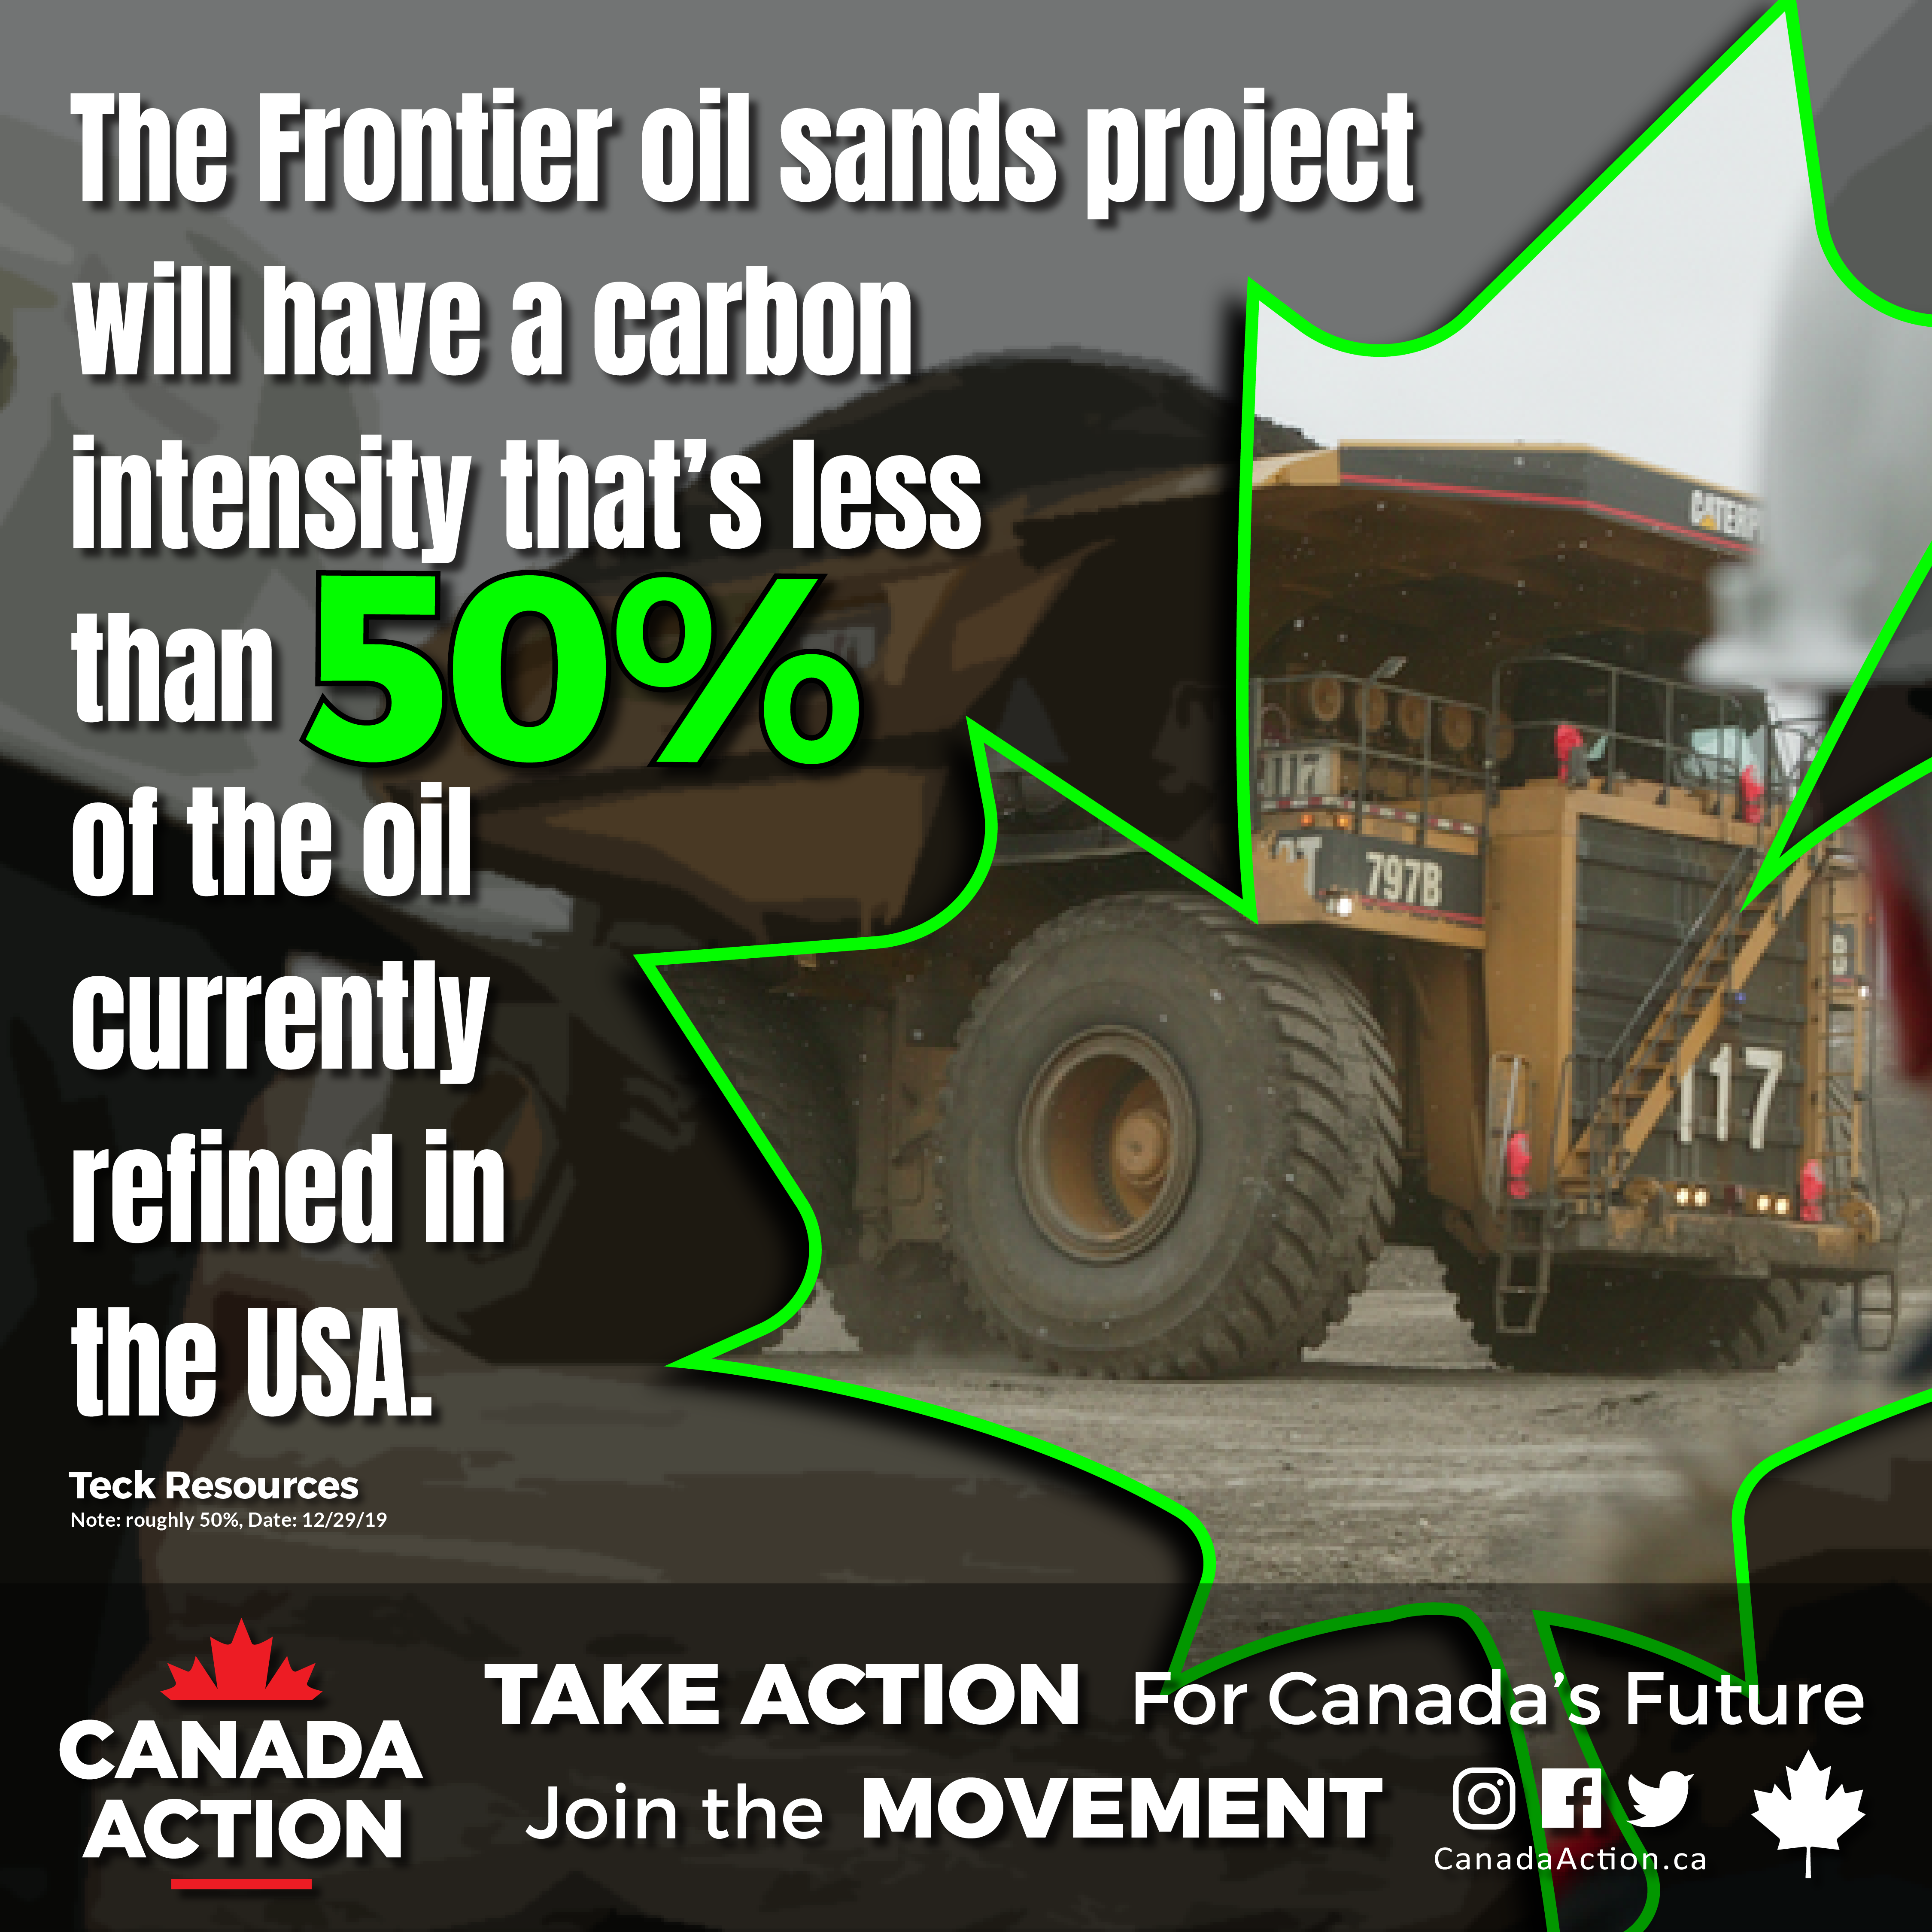 teck frontier mine oil sands intensity less than 50% of USA oil